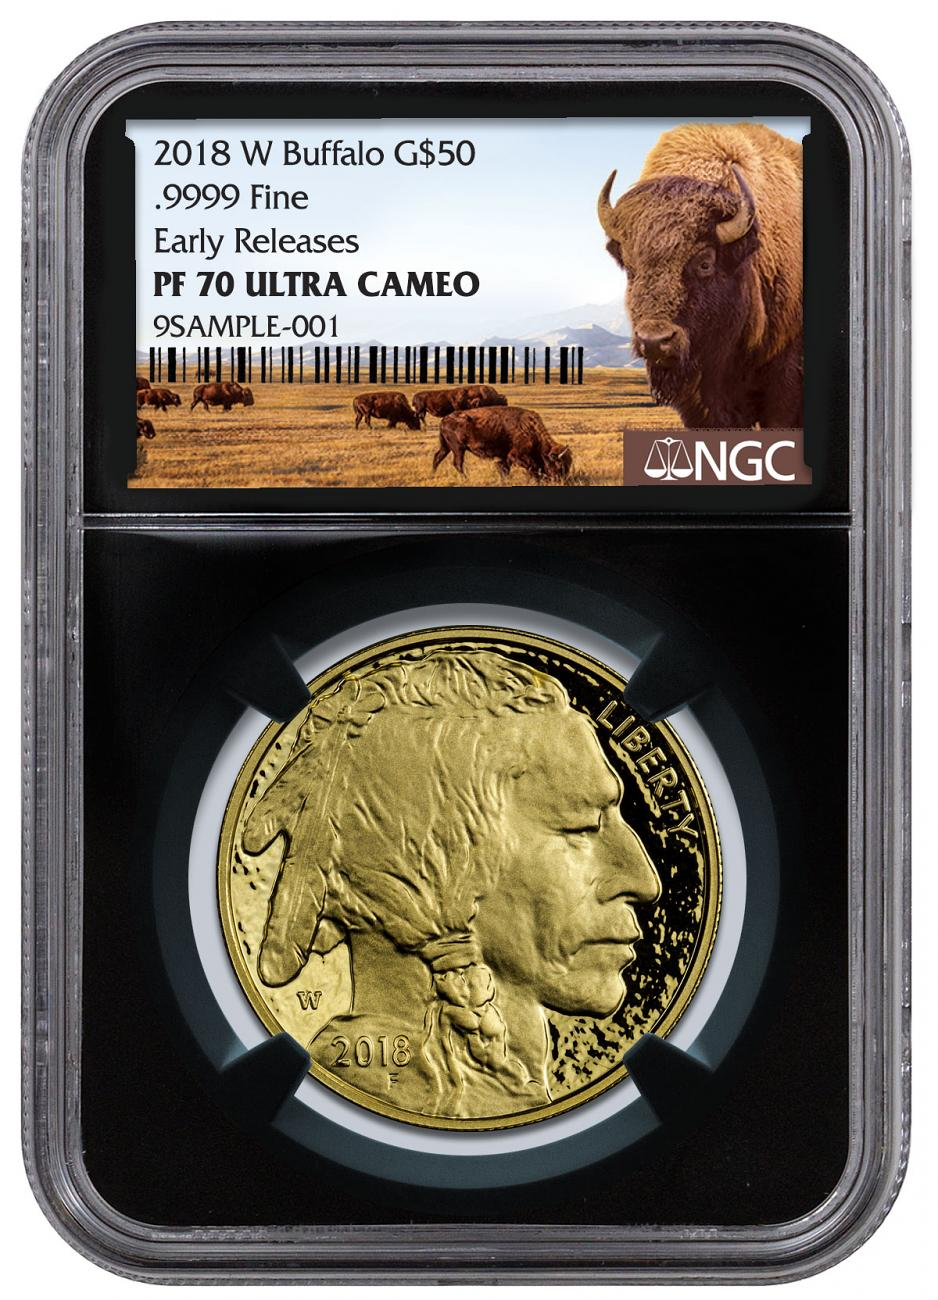 2018-W 1 oz Gold Buffalo Proof $50 Coin NGC PF70 UC ER Black Core Holder Buffalo Label